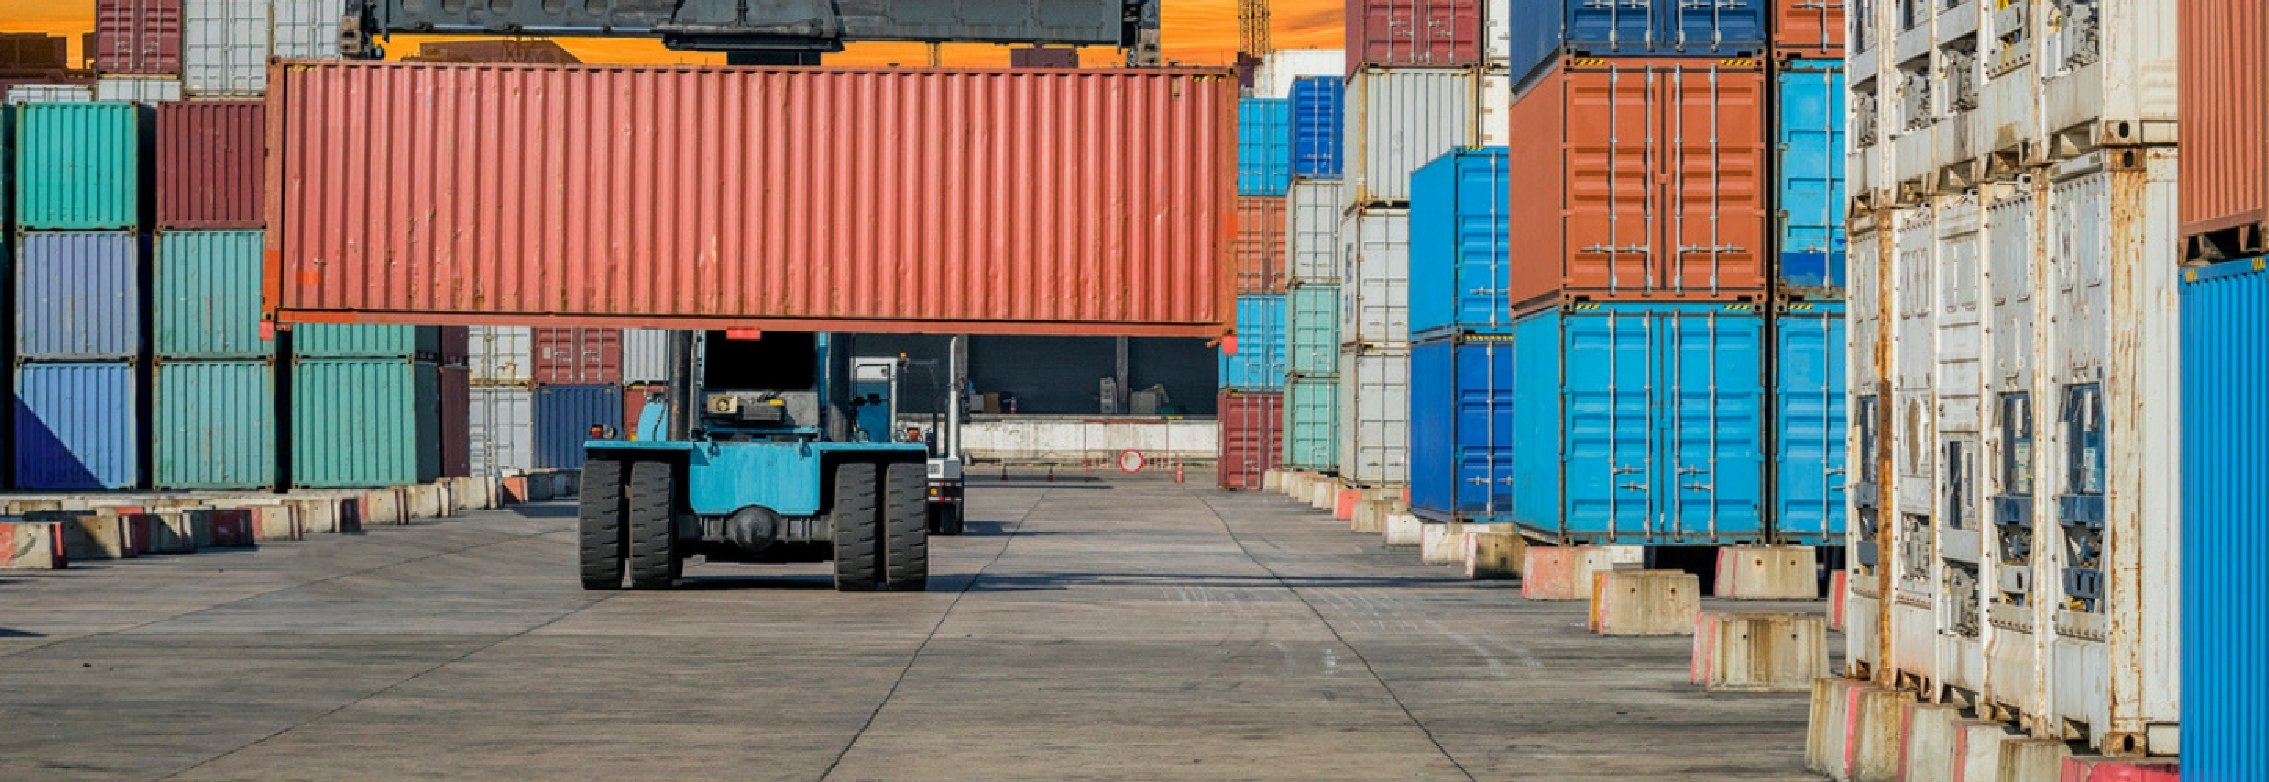 Shipping containers in lot